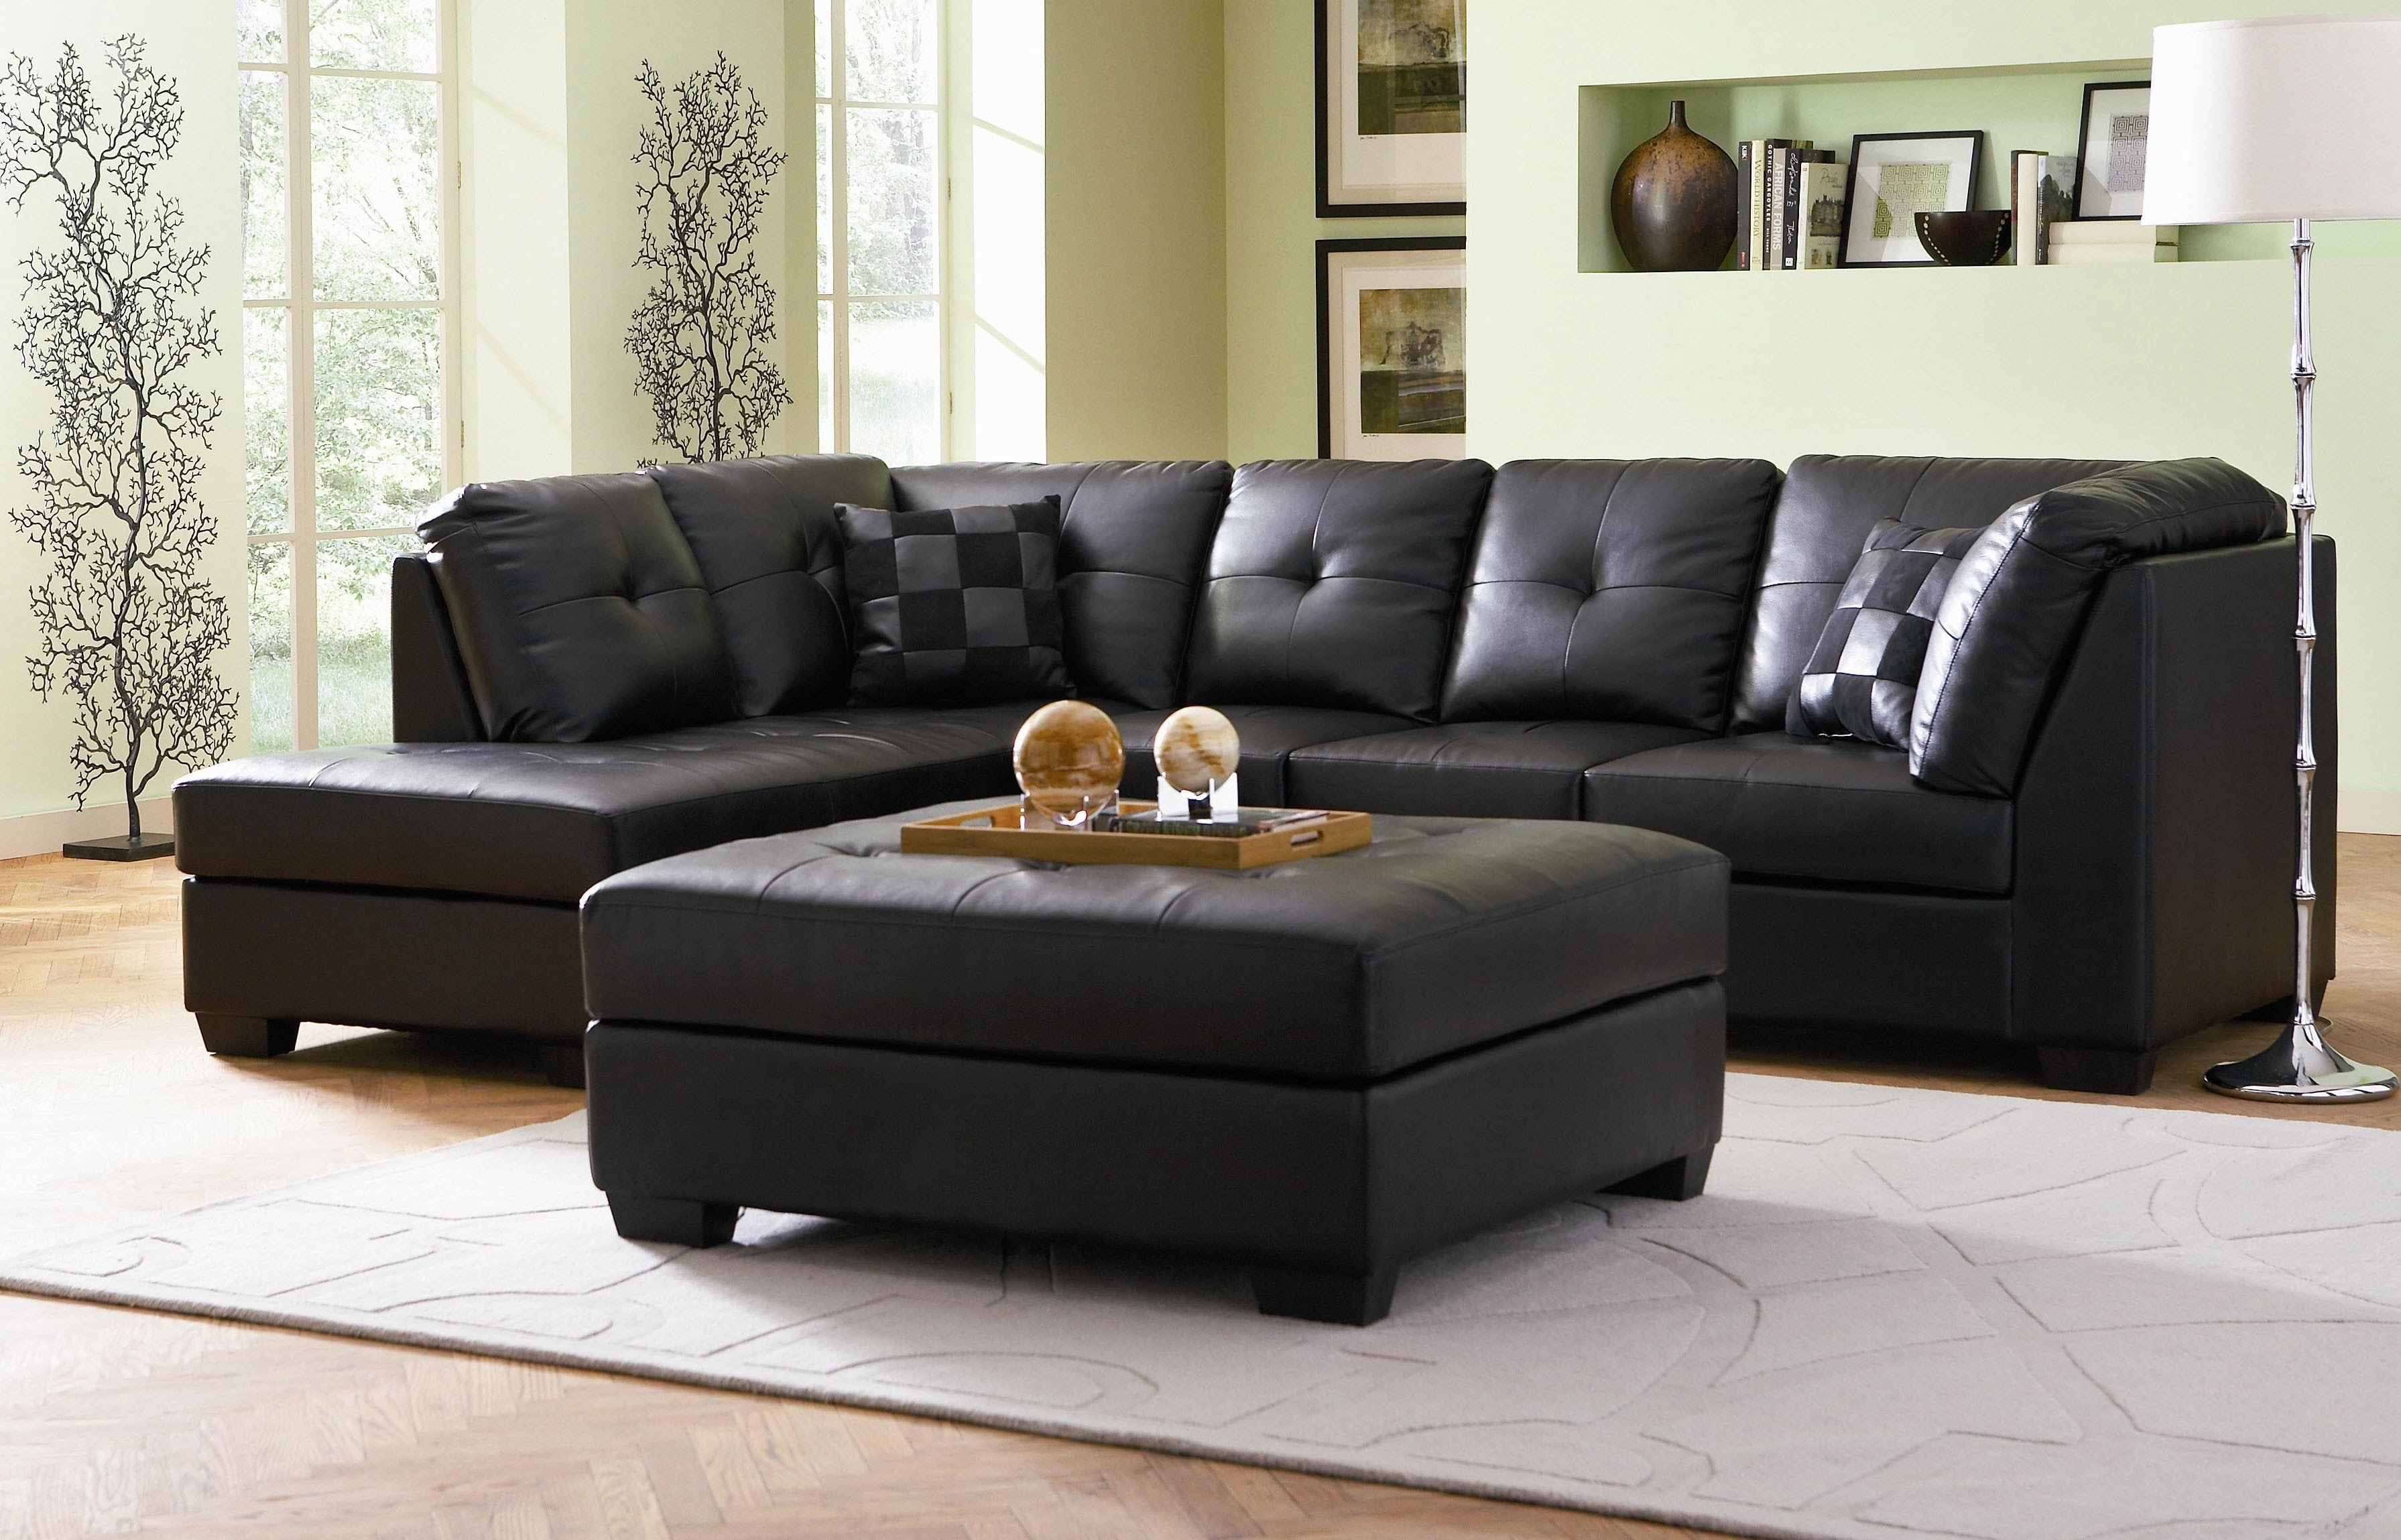 Cheap Sectional Sofas Portland | Functionalities inside Portland Oregon Sectional Sofas (Image 2 of 10)